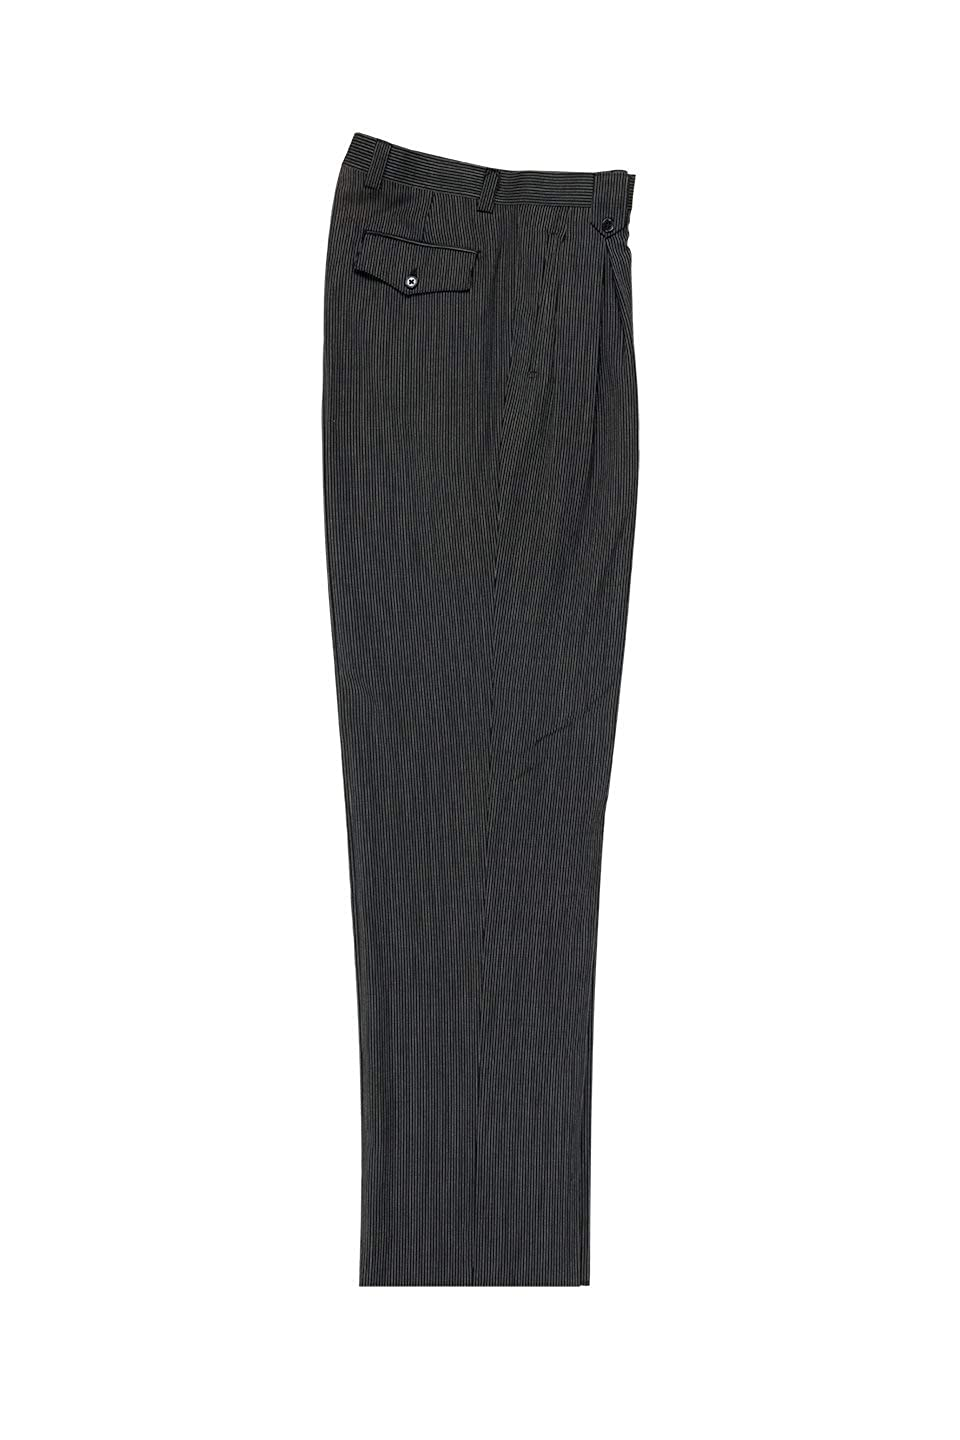 Men's Vintage Pants, Trousers, Jeans, Overalls Tiglio Black White Mini-Stripes Wide Leg Pure Wool Dress Pants Luxe 2270/7/06 $99.00 AT vintagedancer.com